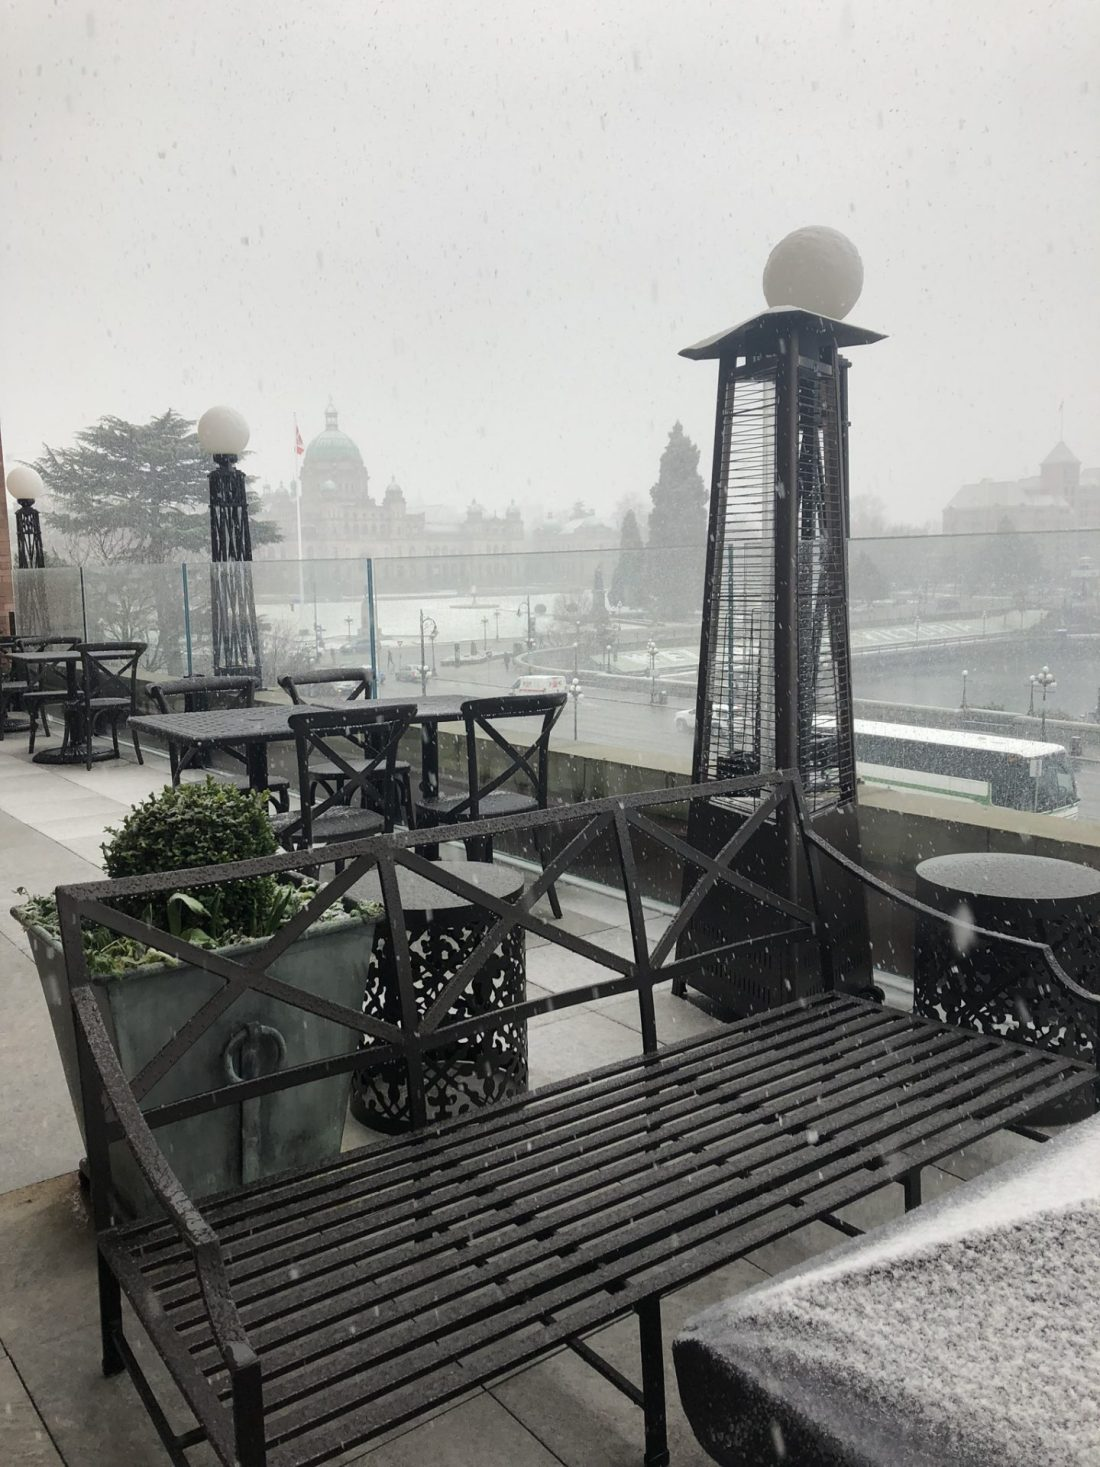 Snow in winter over Victoria, British Columbia and the Parliament Building